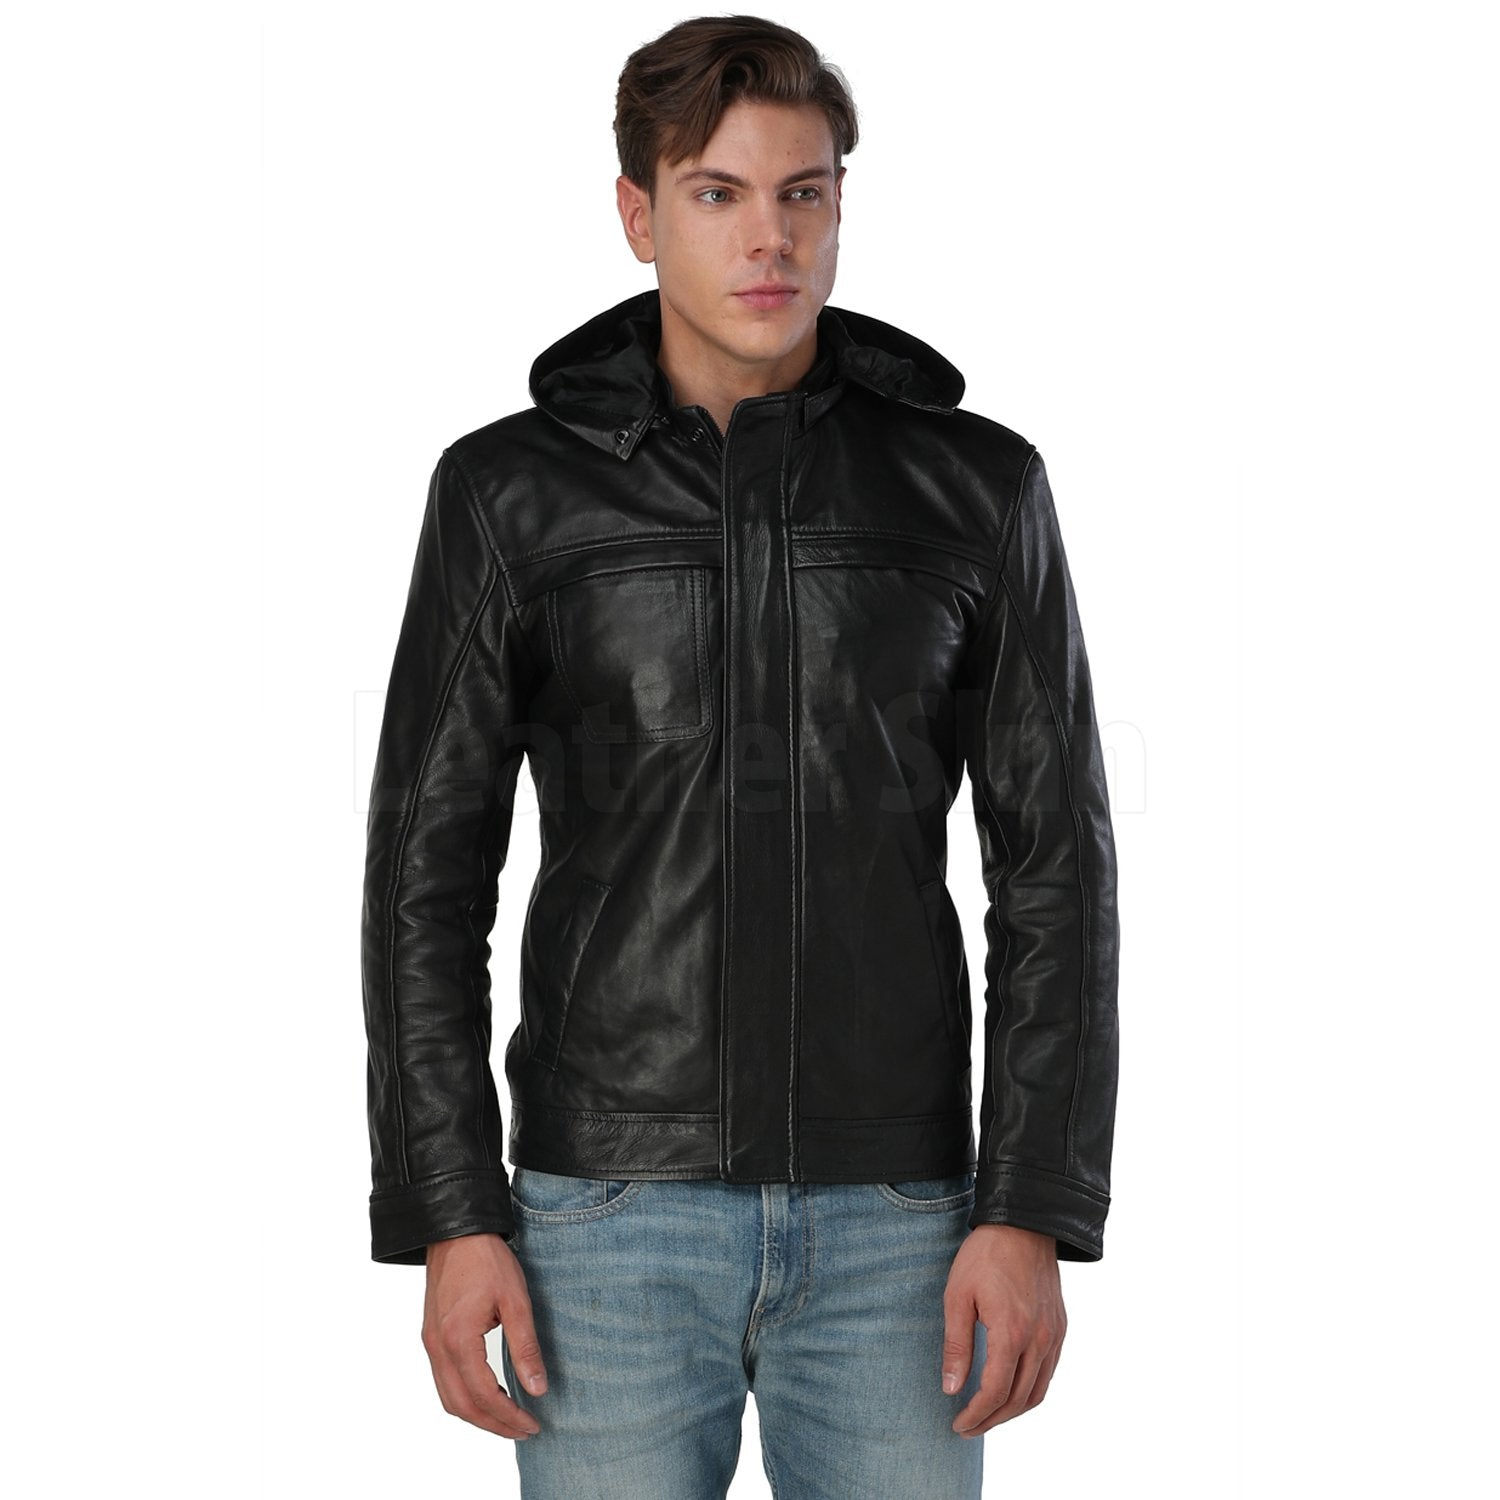 Men's Black Hooded Leather Jacket